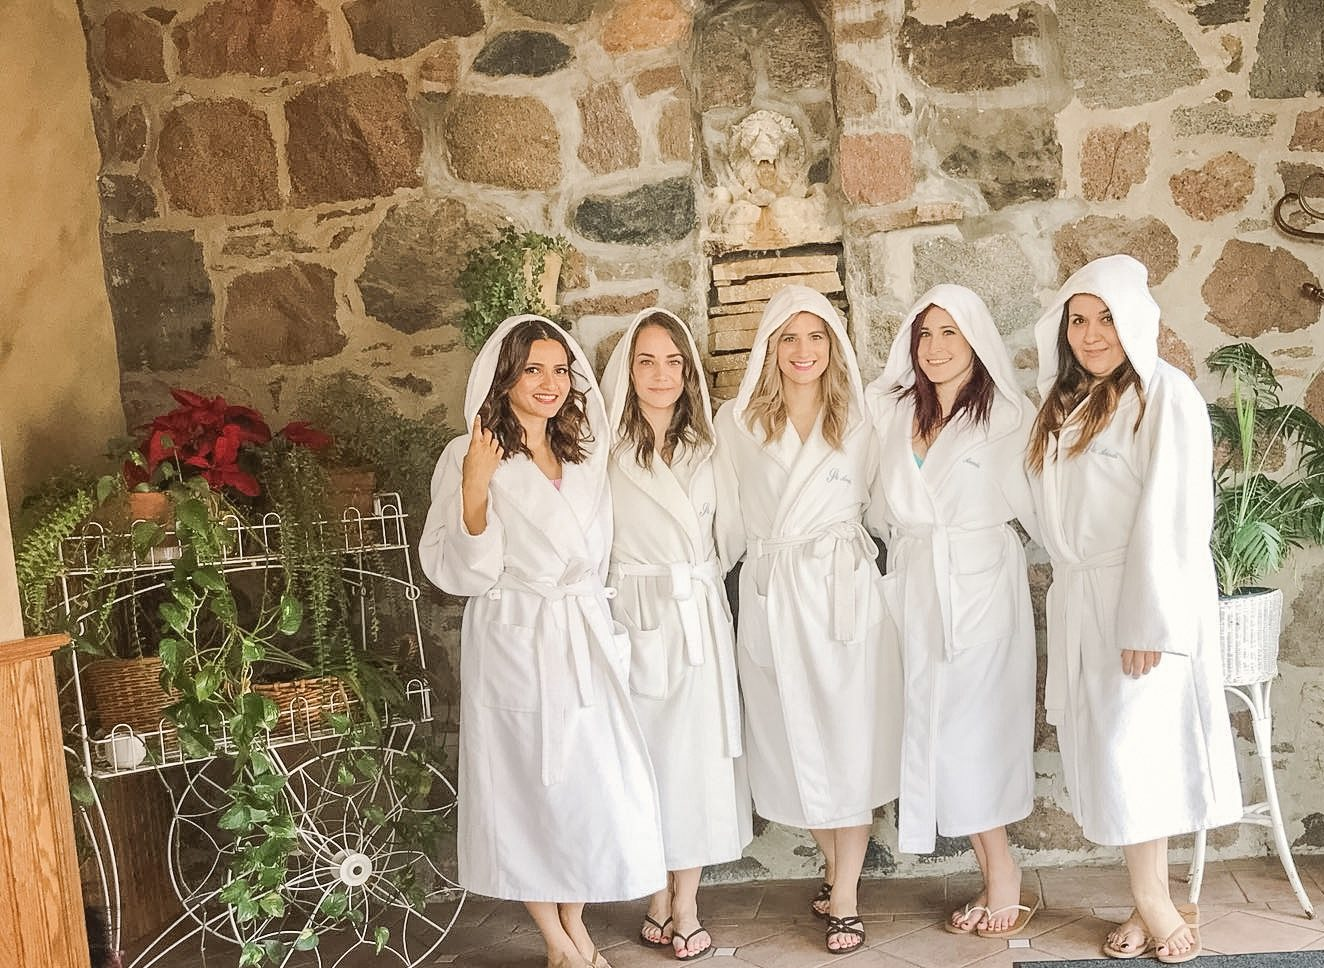 Bijuleni - Ste Anne's All Inclusive-Spa Resort - Girls in robes ready for spa treatments